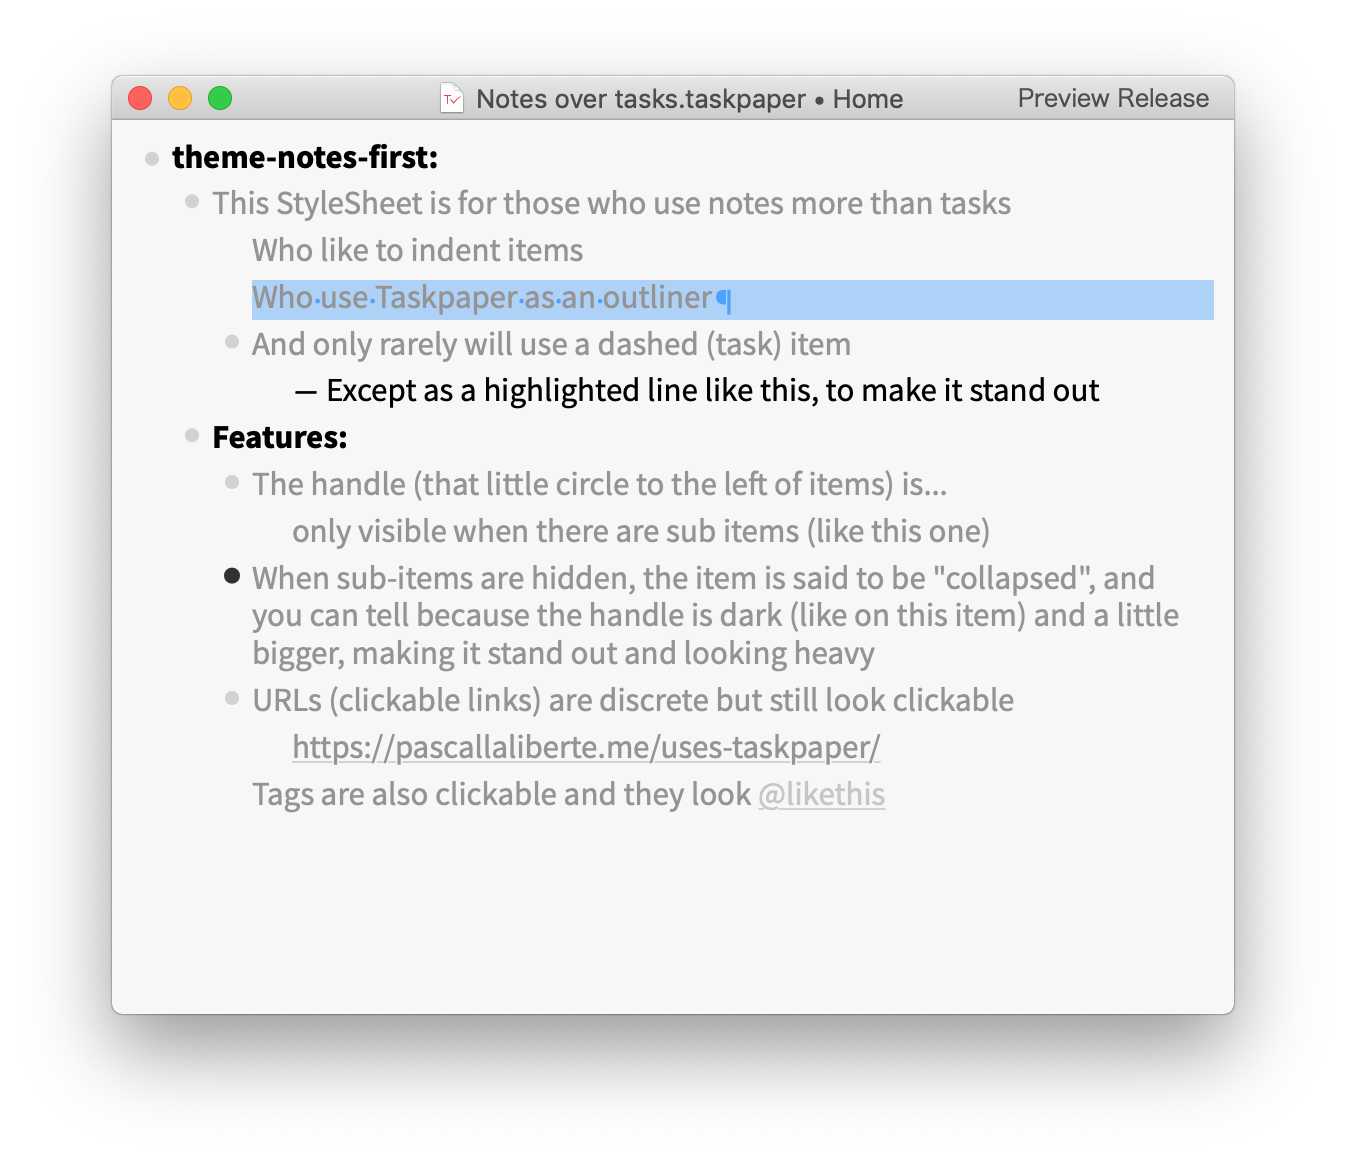 Preview of a TaskPaper with the Light StyleSheet applied